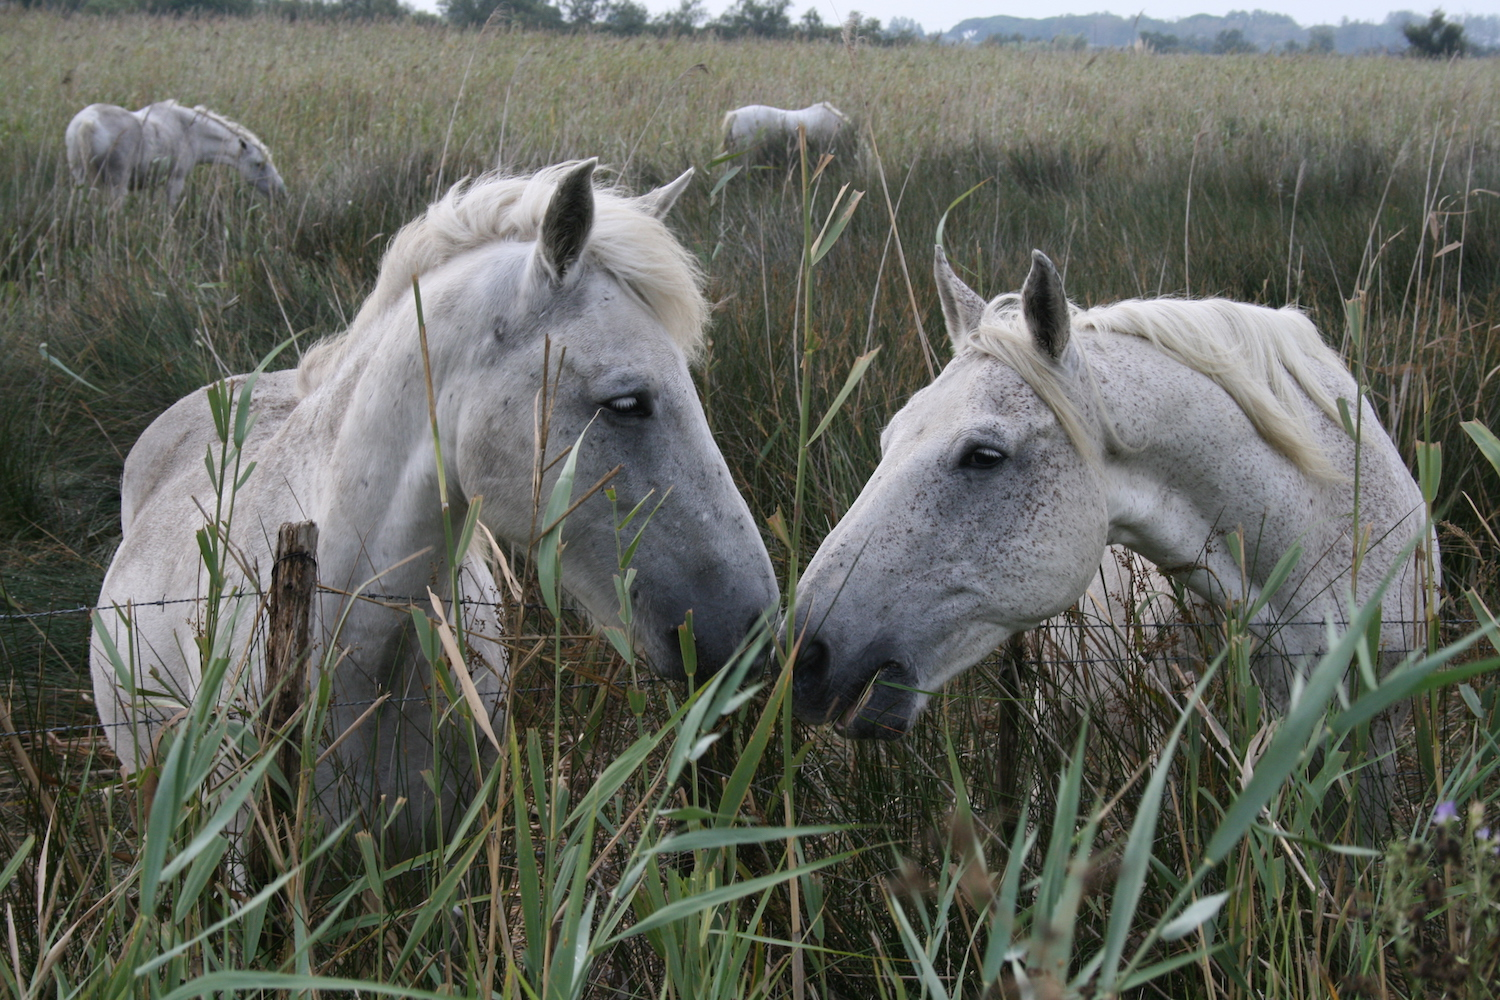 The wild white horses of the Camargue